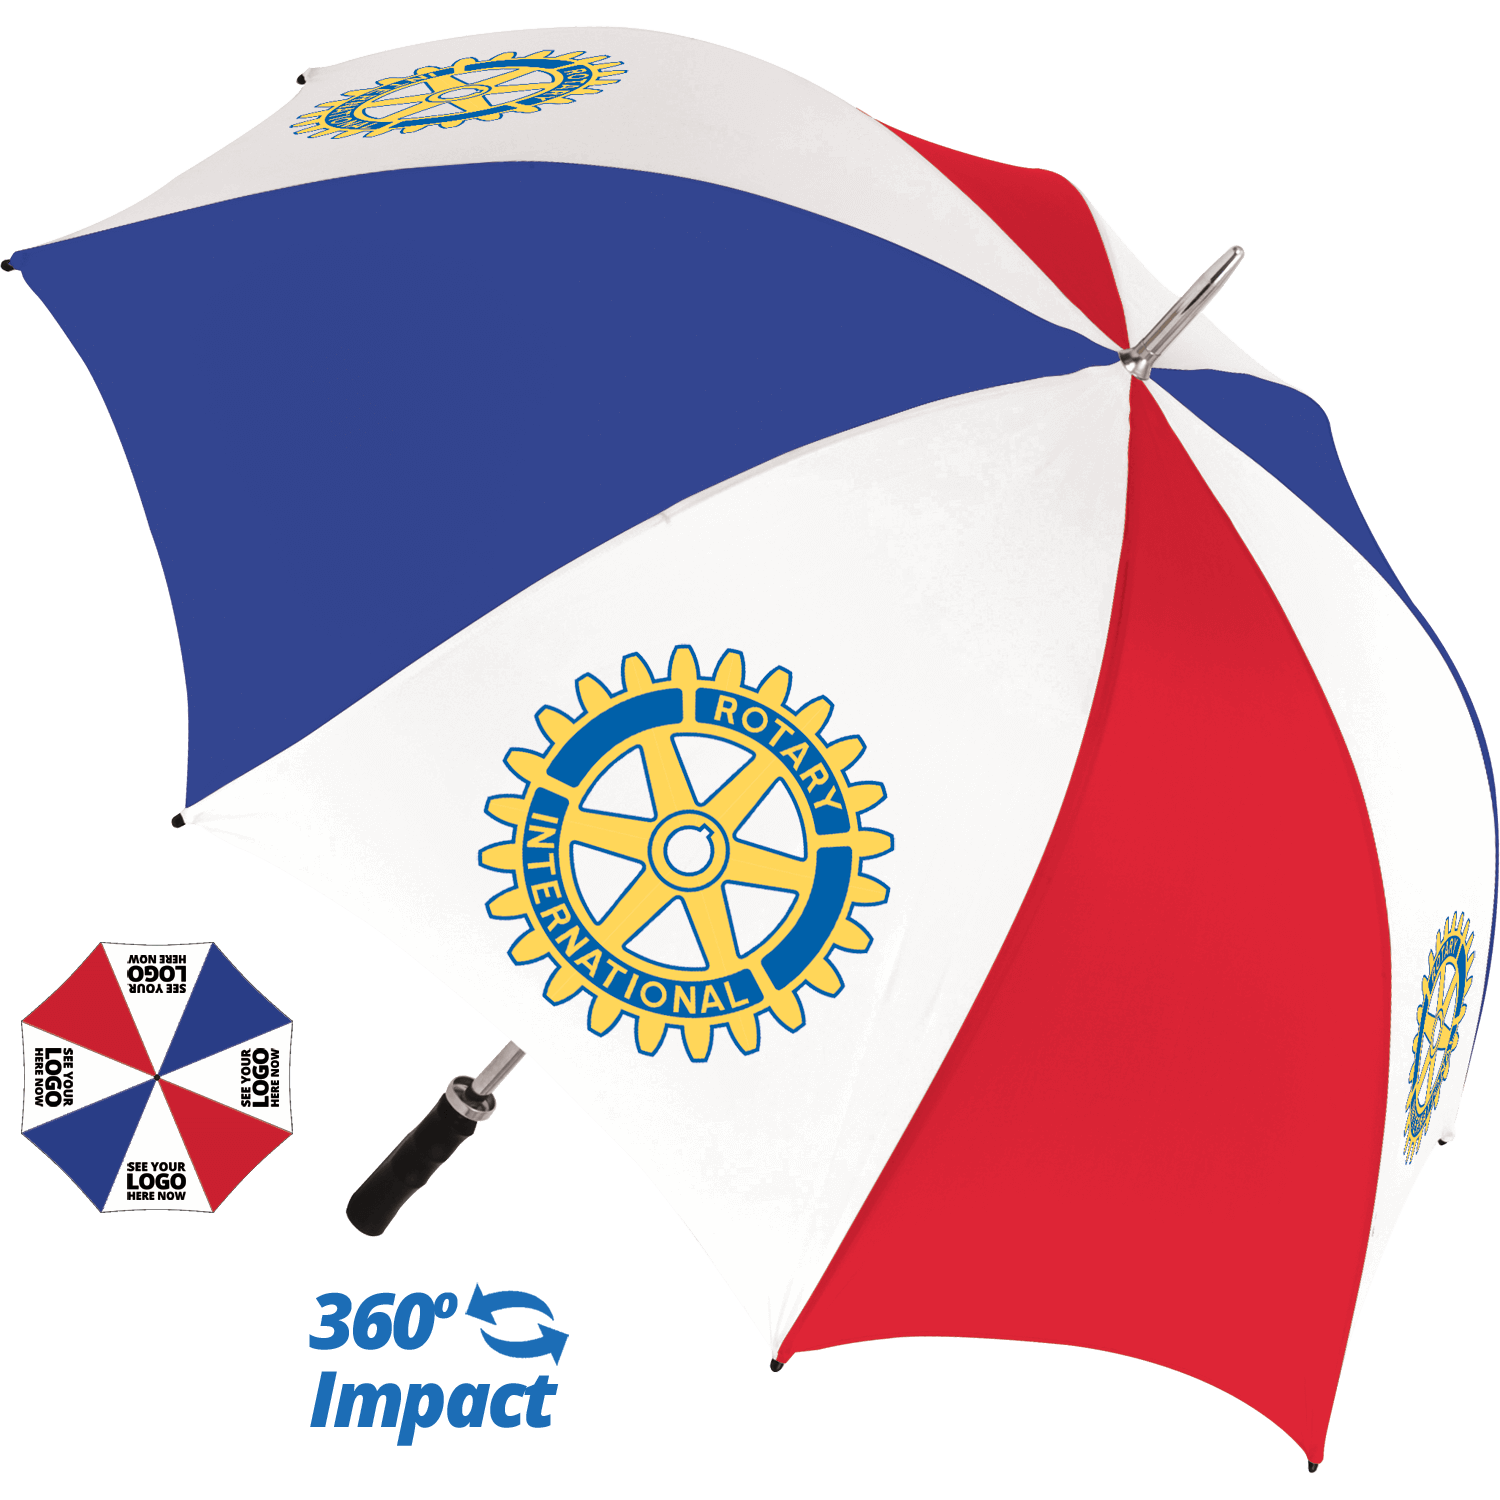 Bedford Golf Promotional Umbrella - 4 Panel Print